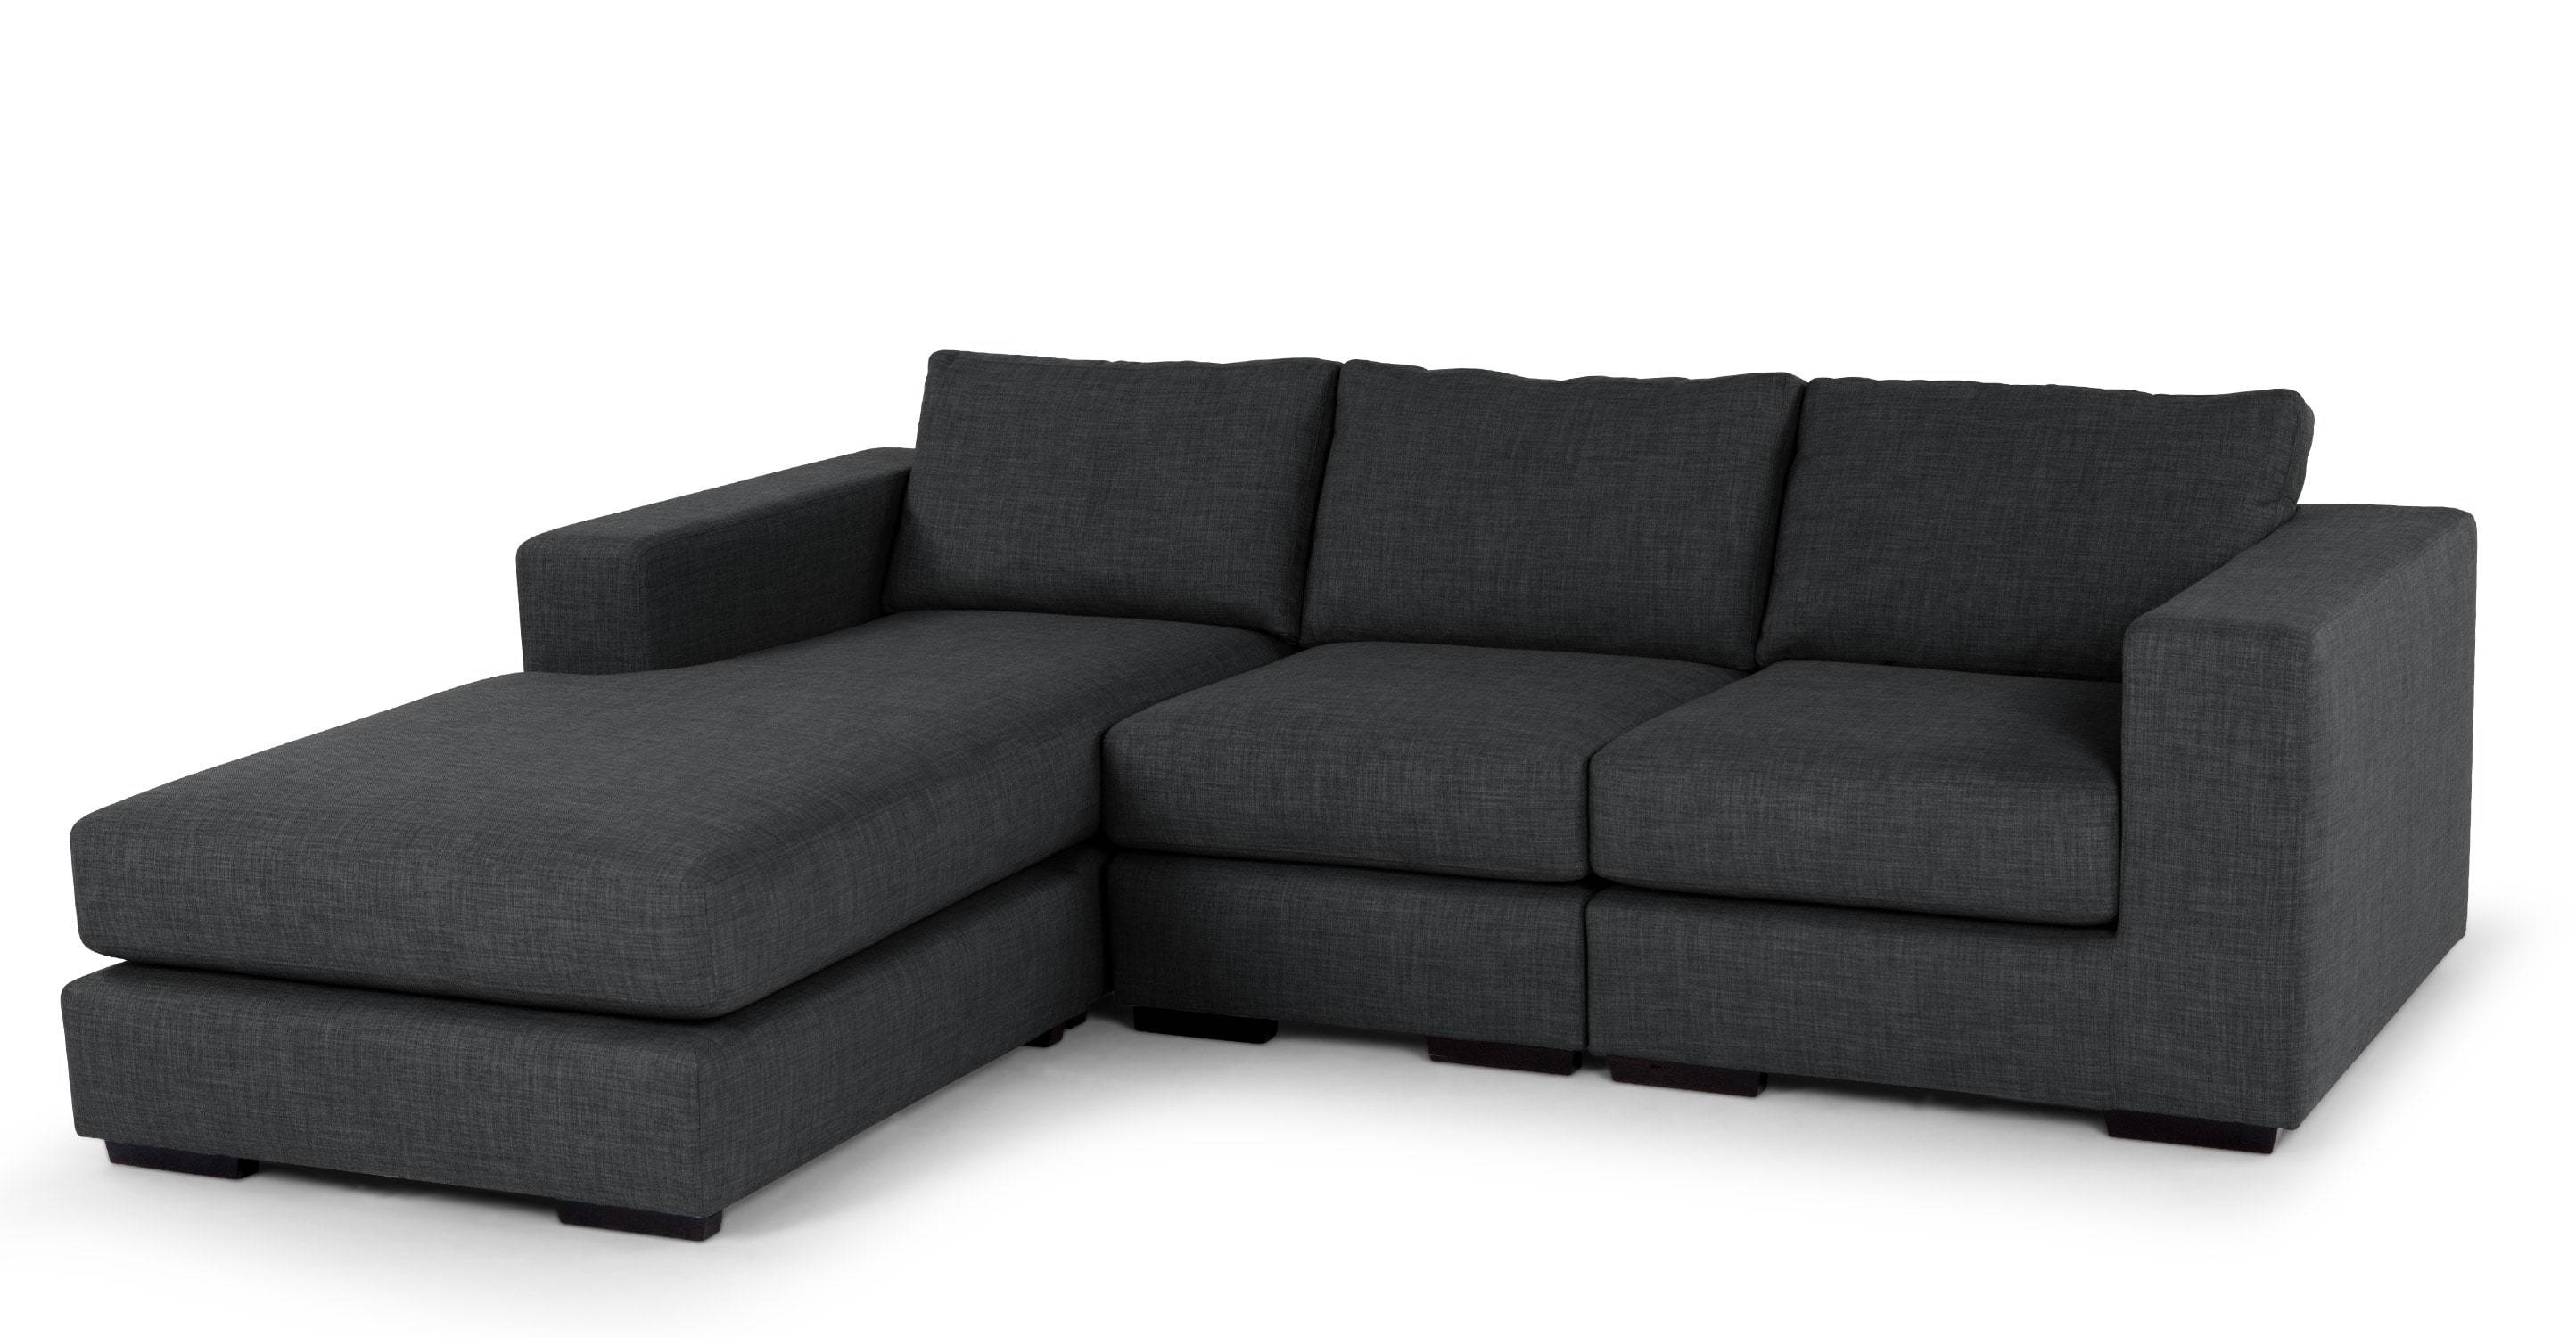 Mortimer 4 Seater Modular Corner Sofa, Shadow Grey | Made within Modular Corner Sofas (Image 28 of 30)